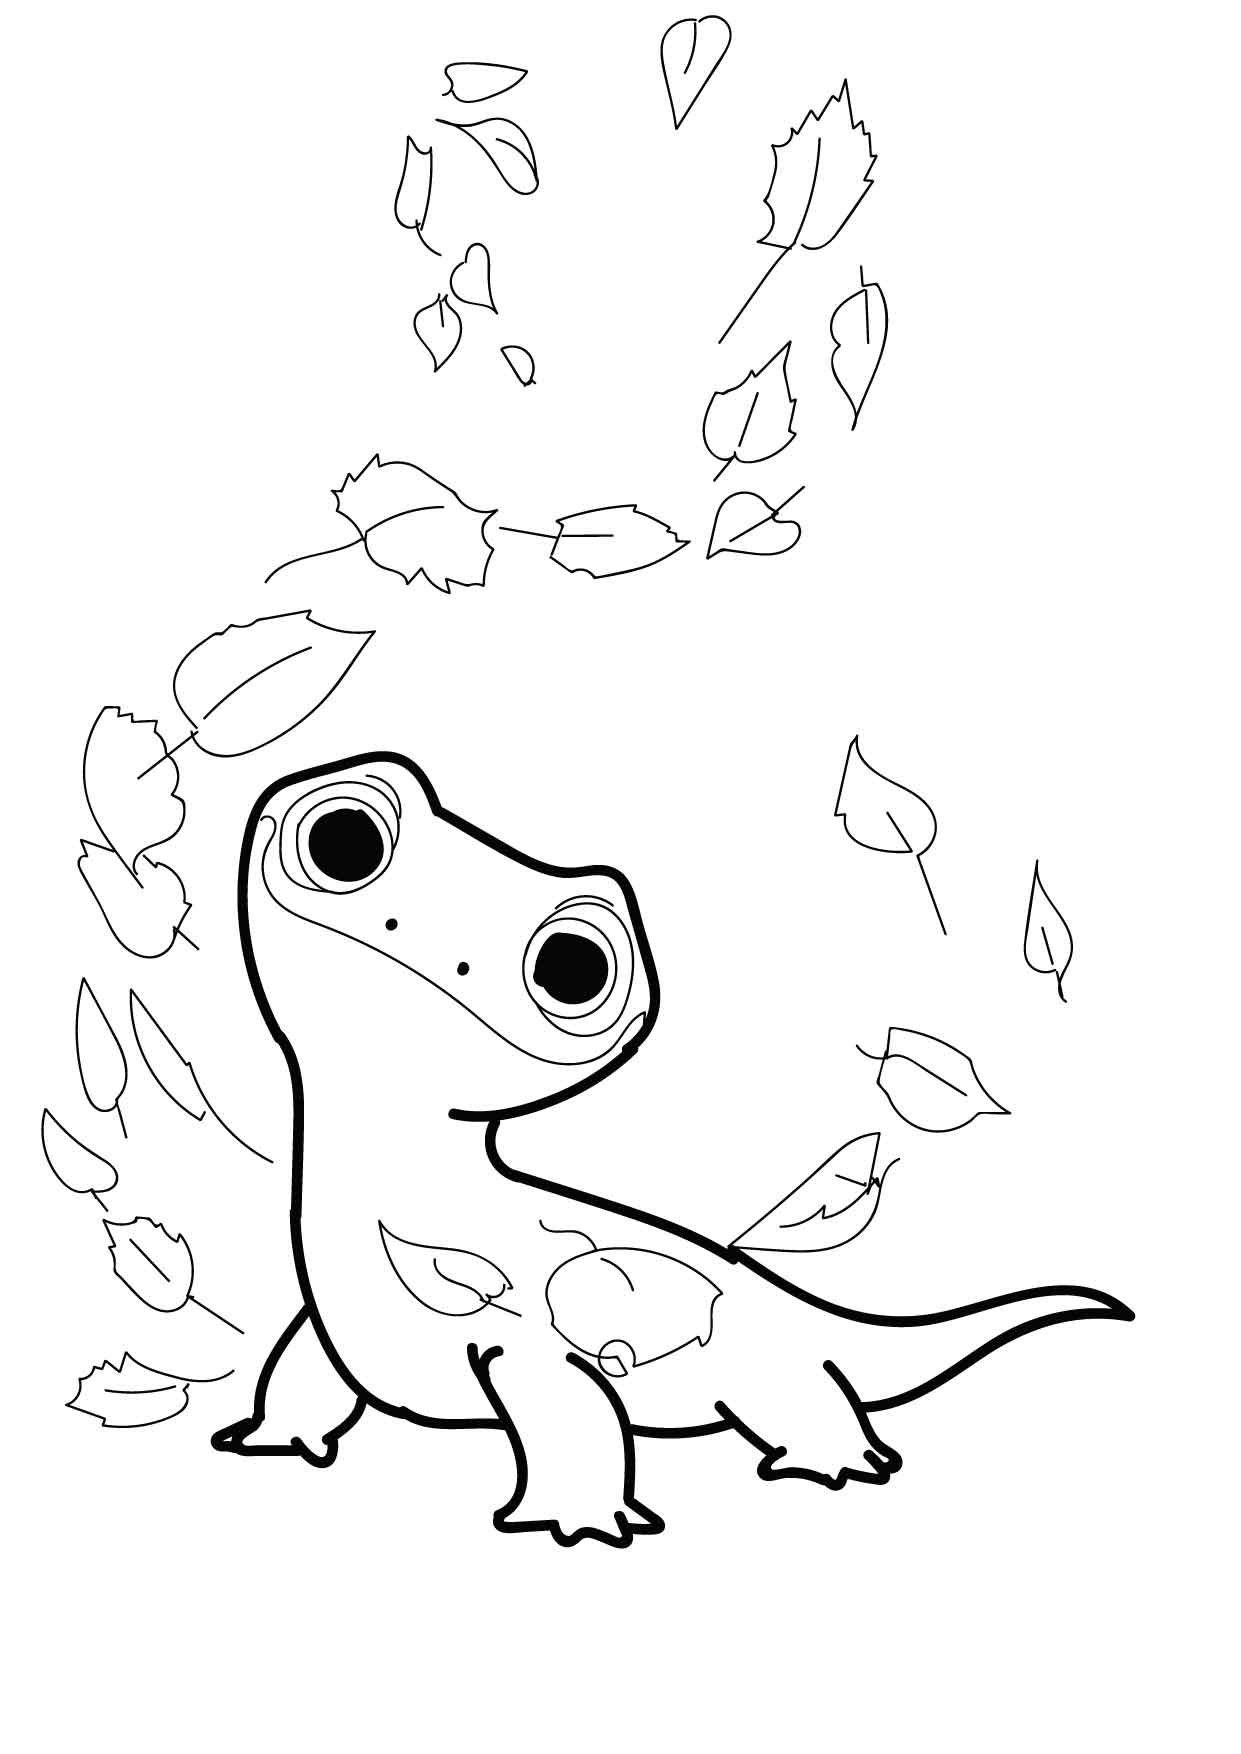 Lizard Coloring Page - Free Lizard Coloring Pages : ColoringPages101.com | 1754x1241